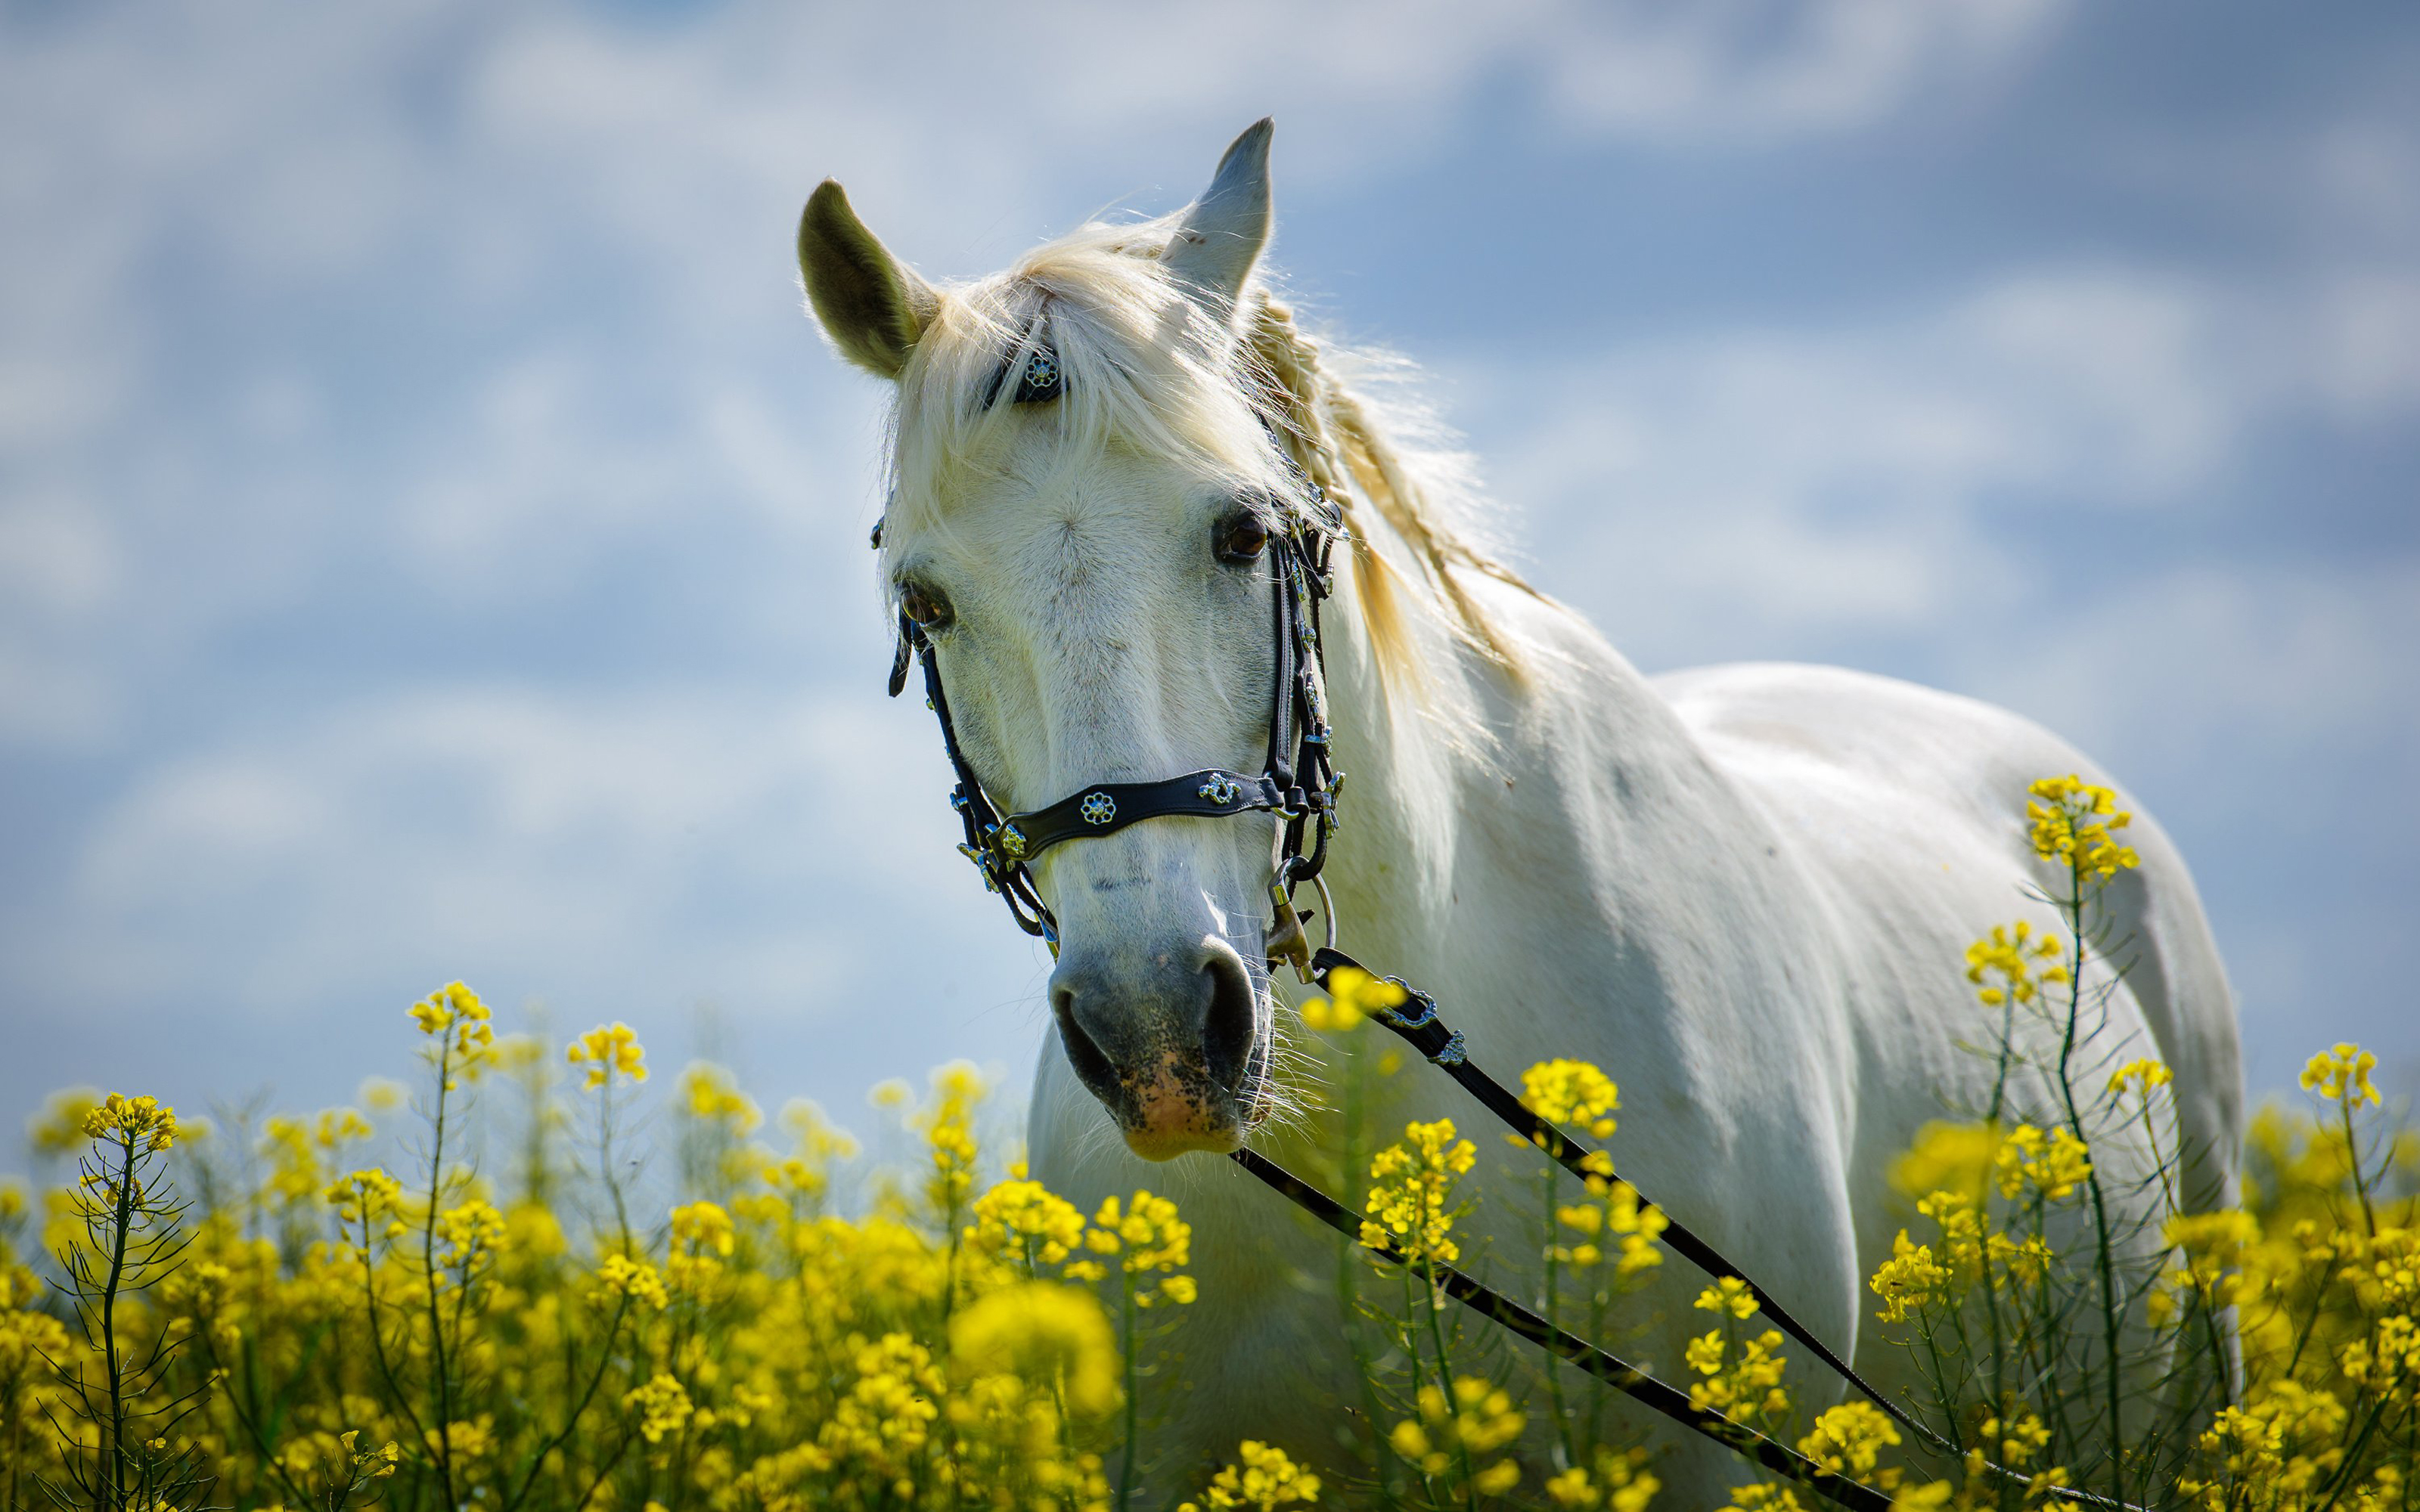 Hd Christmas Wallpapers 1080p Horse In Field With Yellow Flowers Meadow Desktop Hd